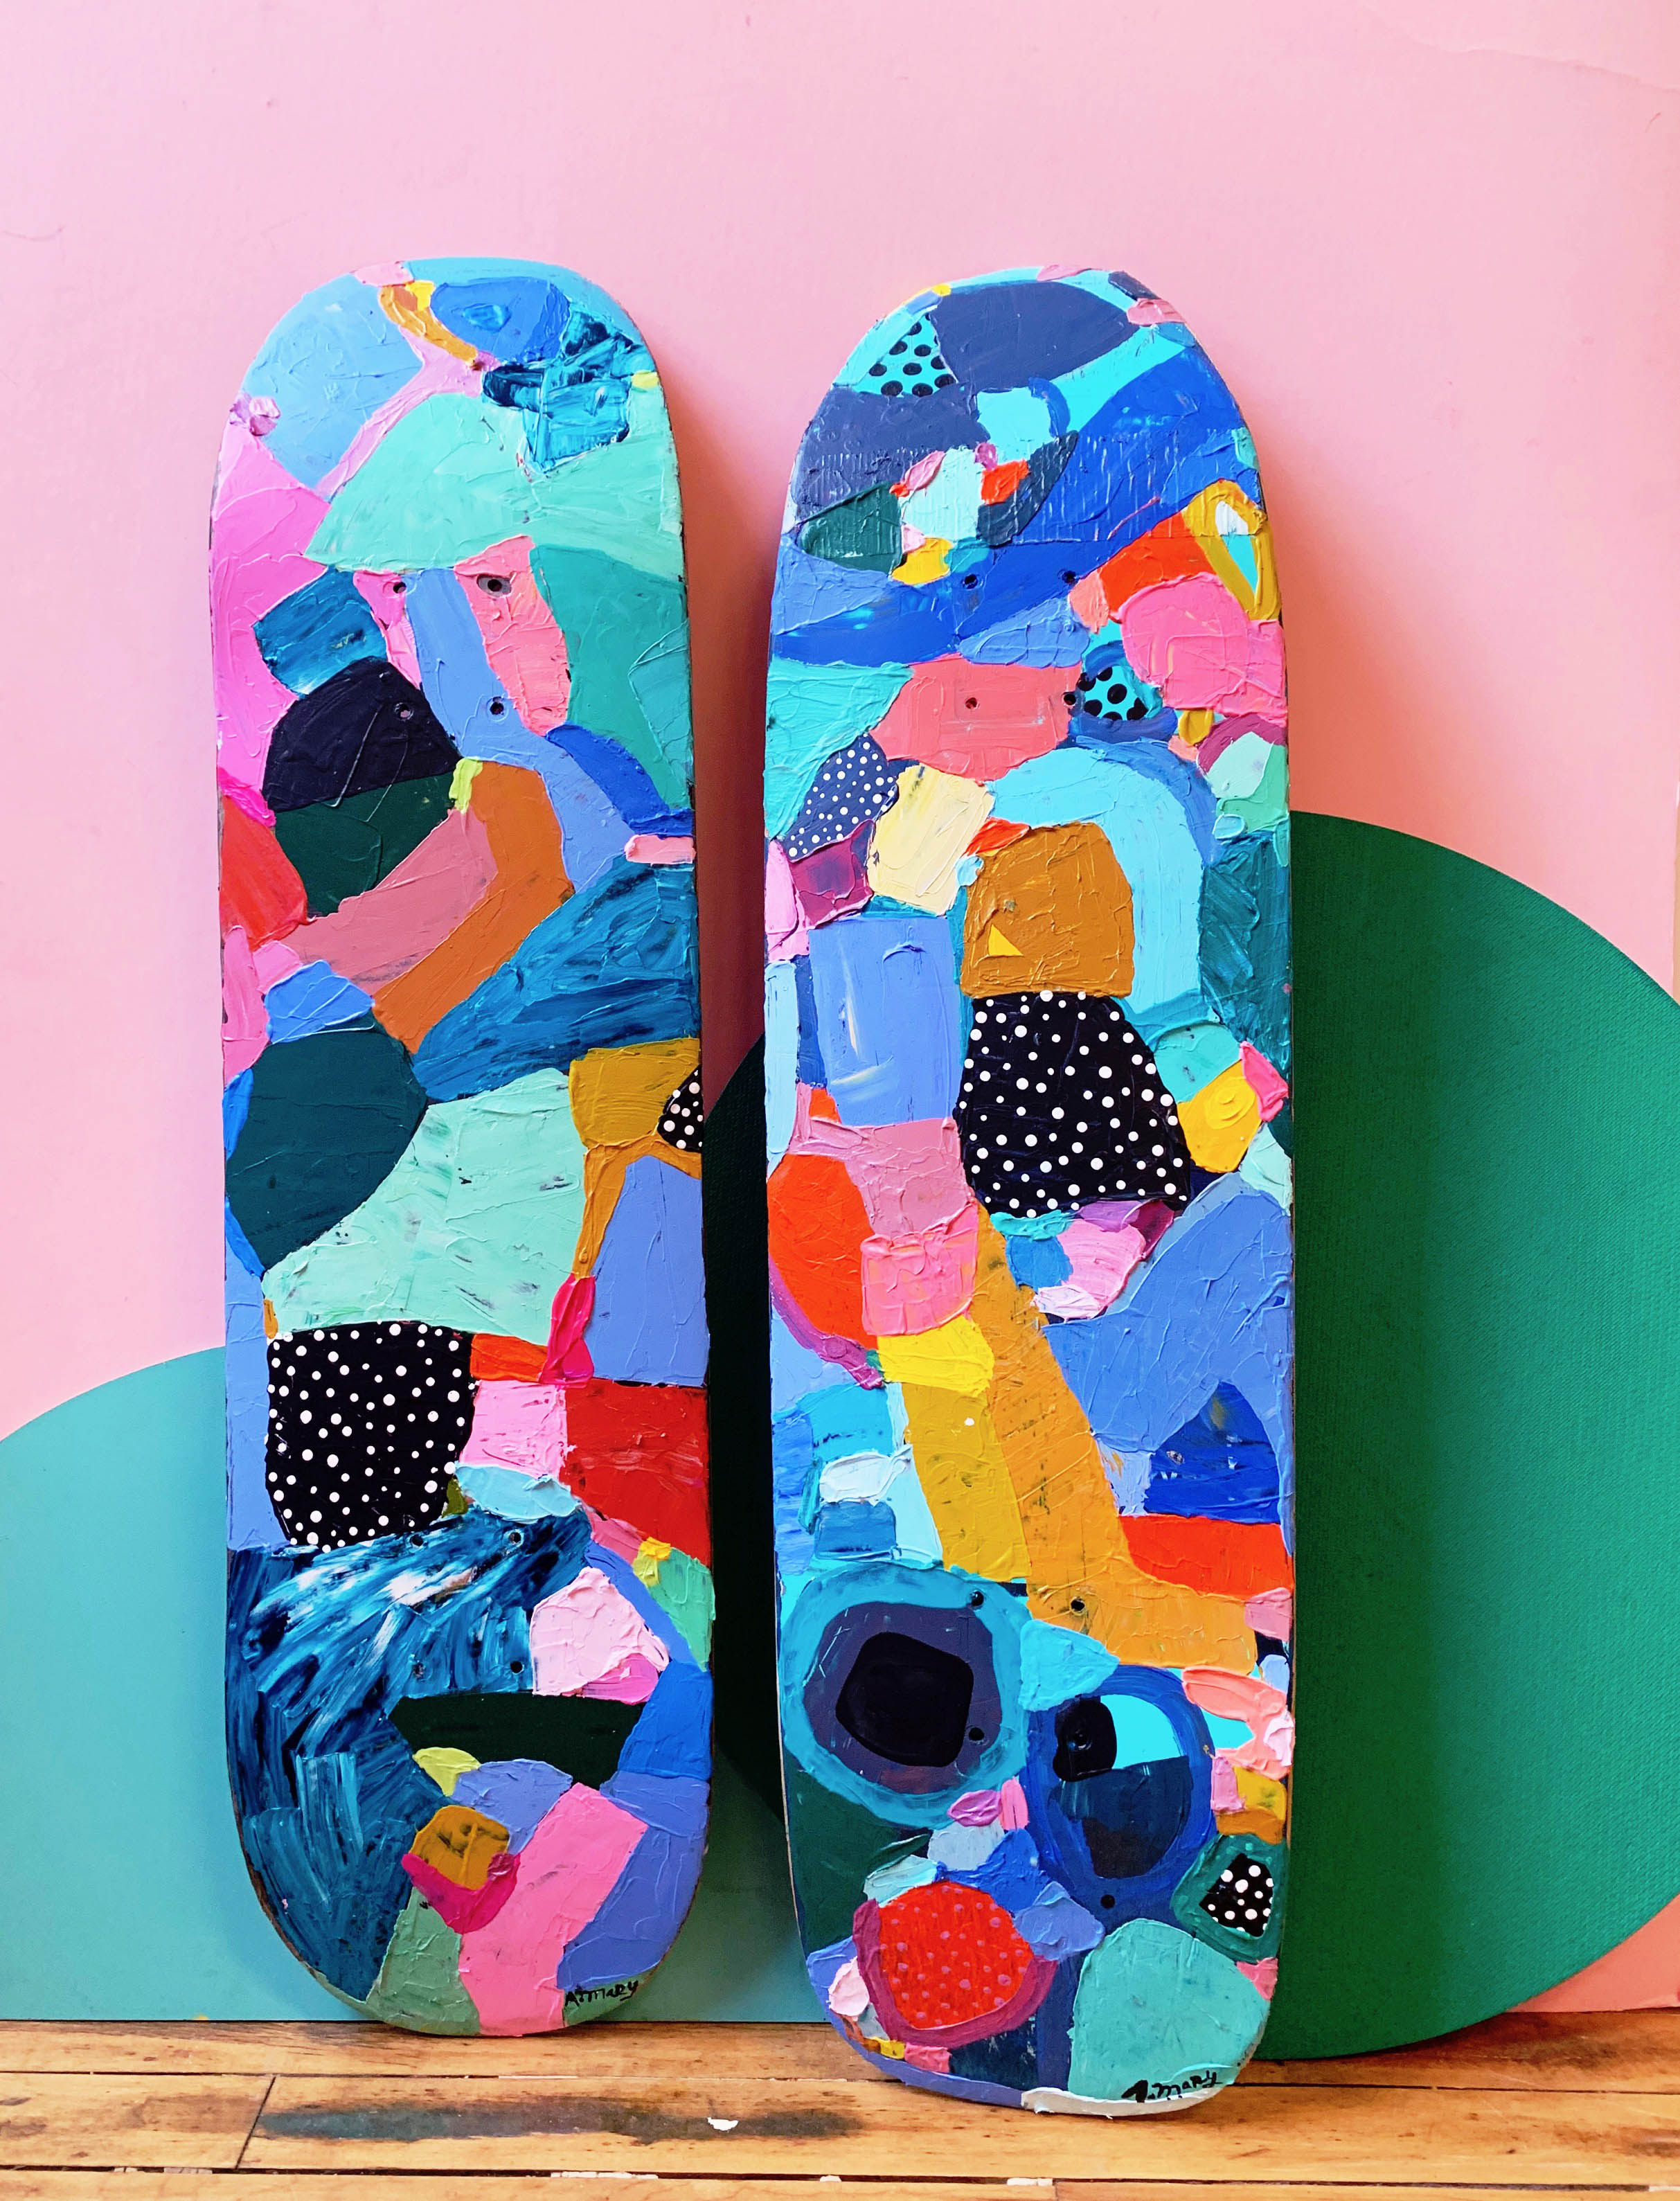 Hand-painted skateboard 2. Available for purchase.  $300 for one board. $600 for both.